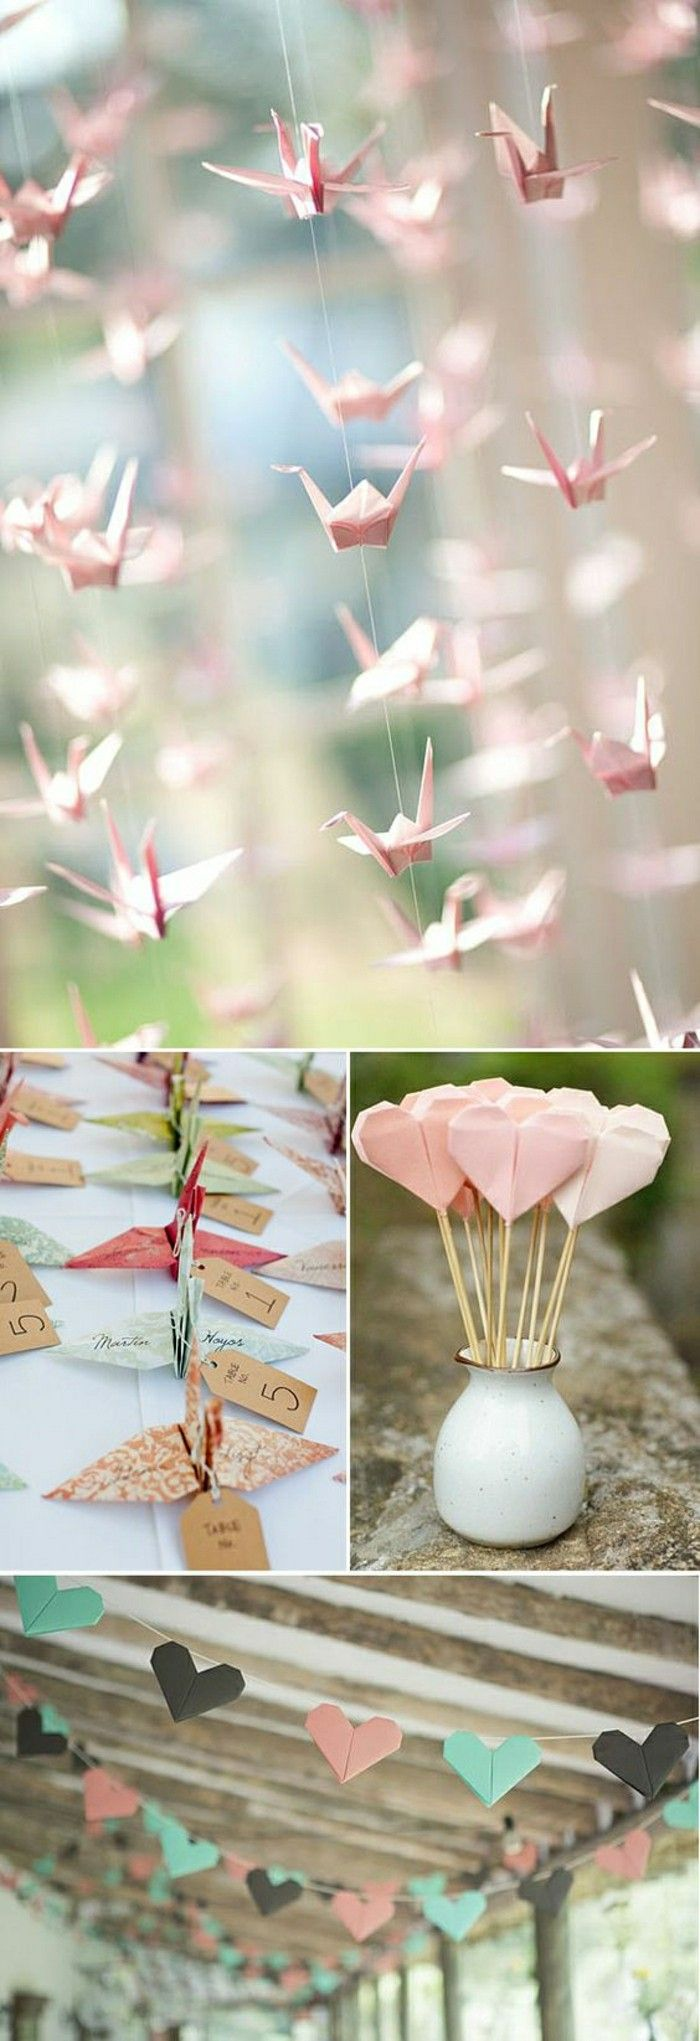 Diy D Co De Table Mariage Total 30 Eur Country Style Wedding